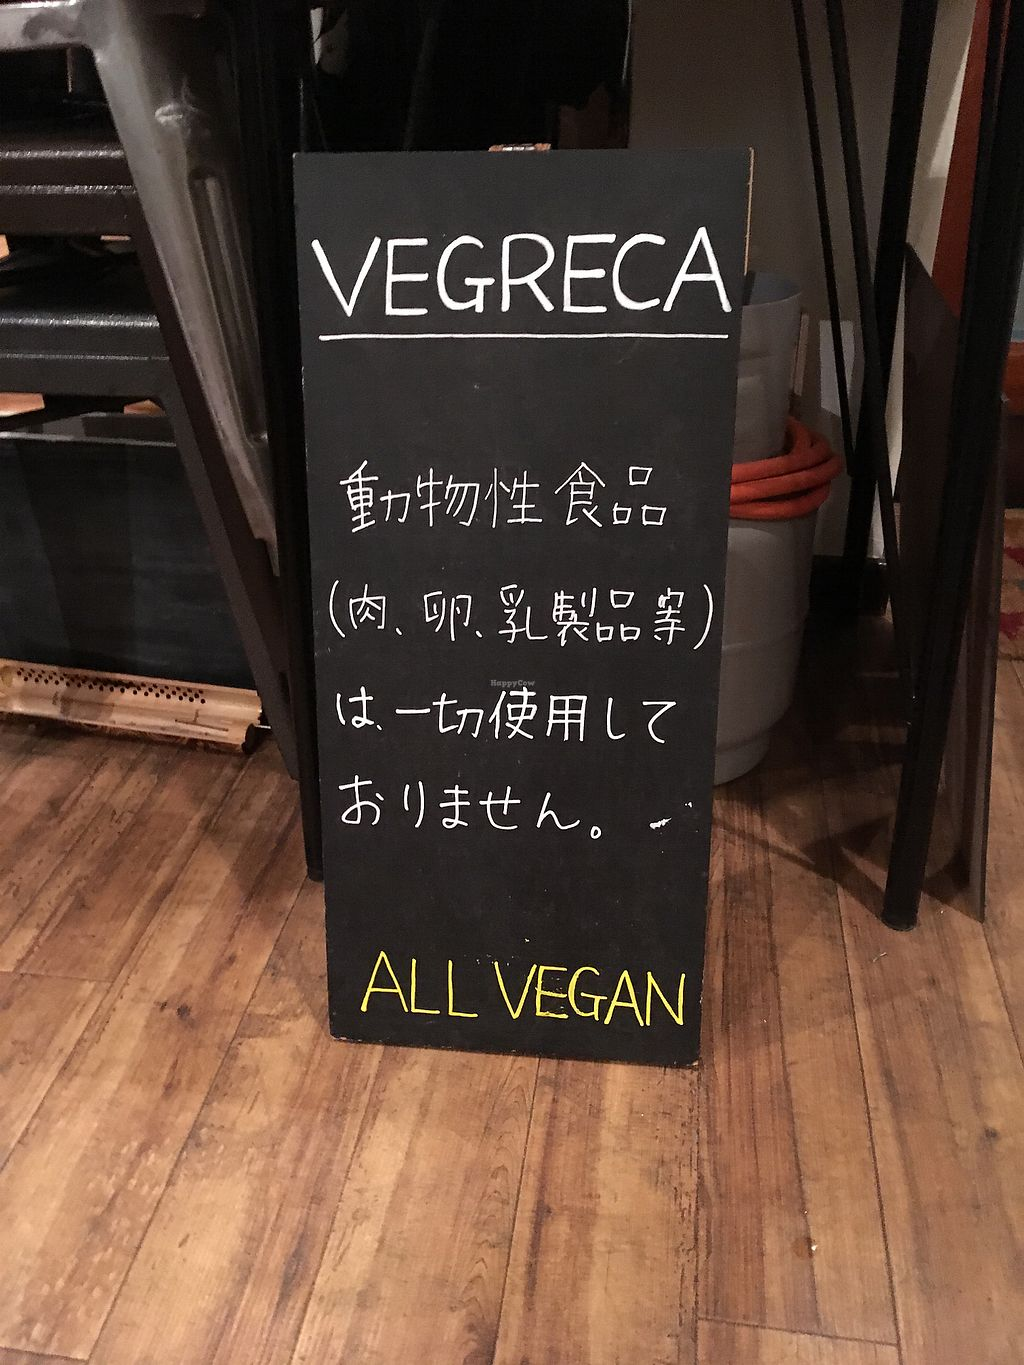 """Photo of VegReca  by <a href=""""/members/profile/joseywales"""">joseywales</a> <br/>VegReca is vegan now <br/> October 16, 2017  - <a href='/contact/abuse/image/62110/315817'>Report</a>"""